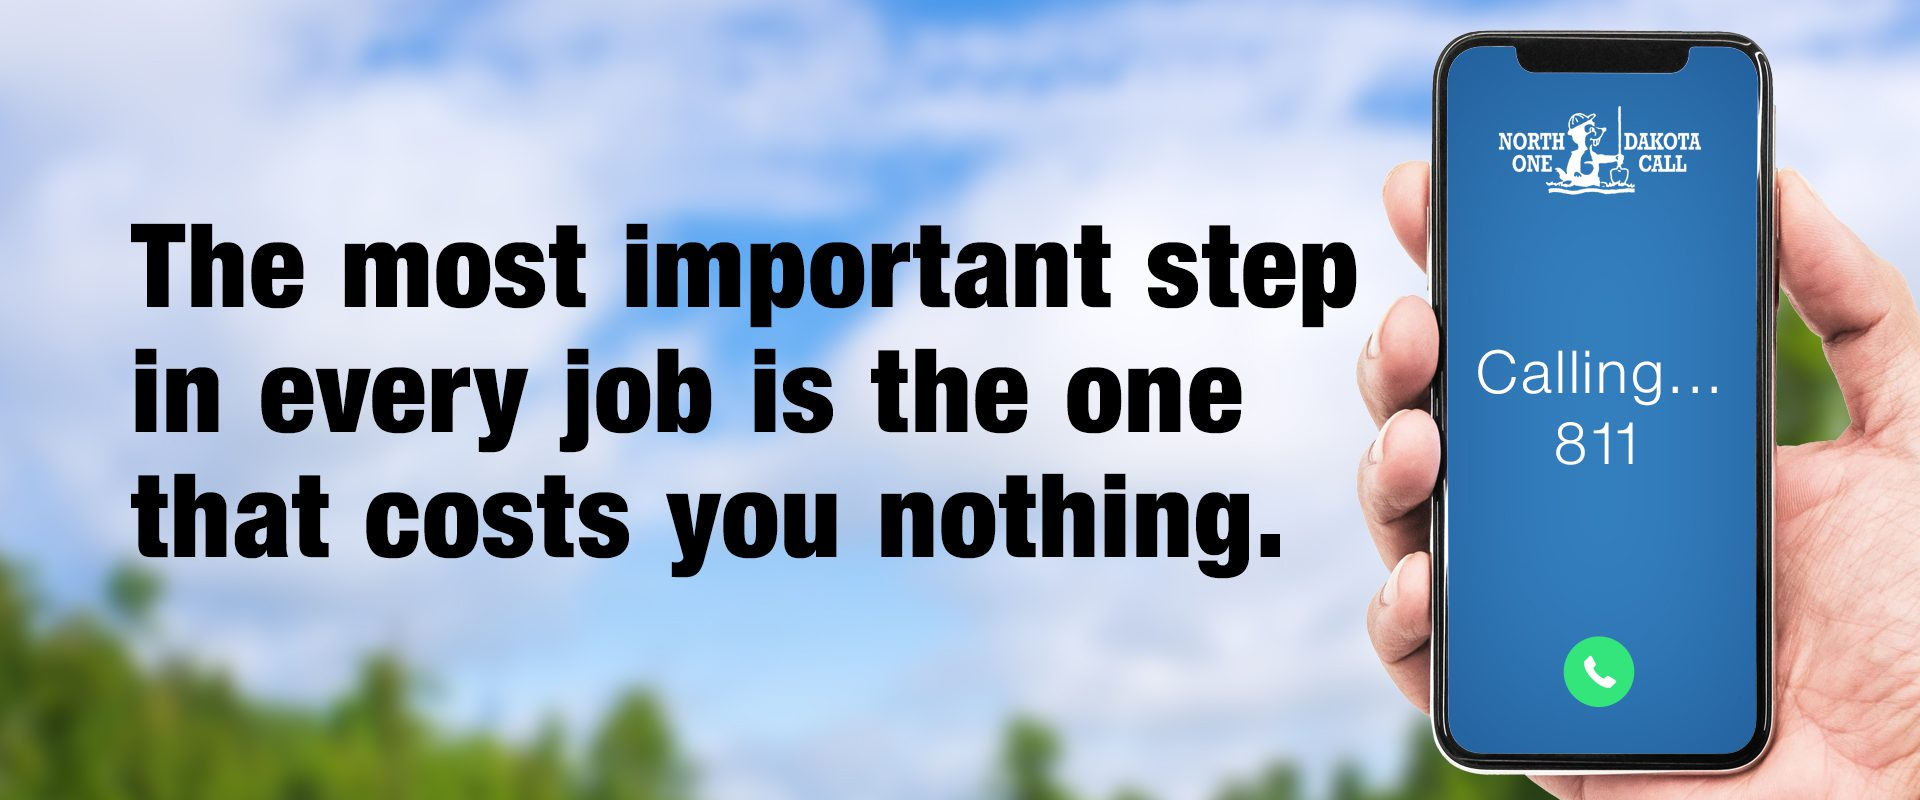 The most important step in every job is the one that costs you nothing.